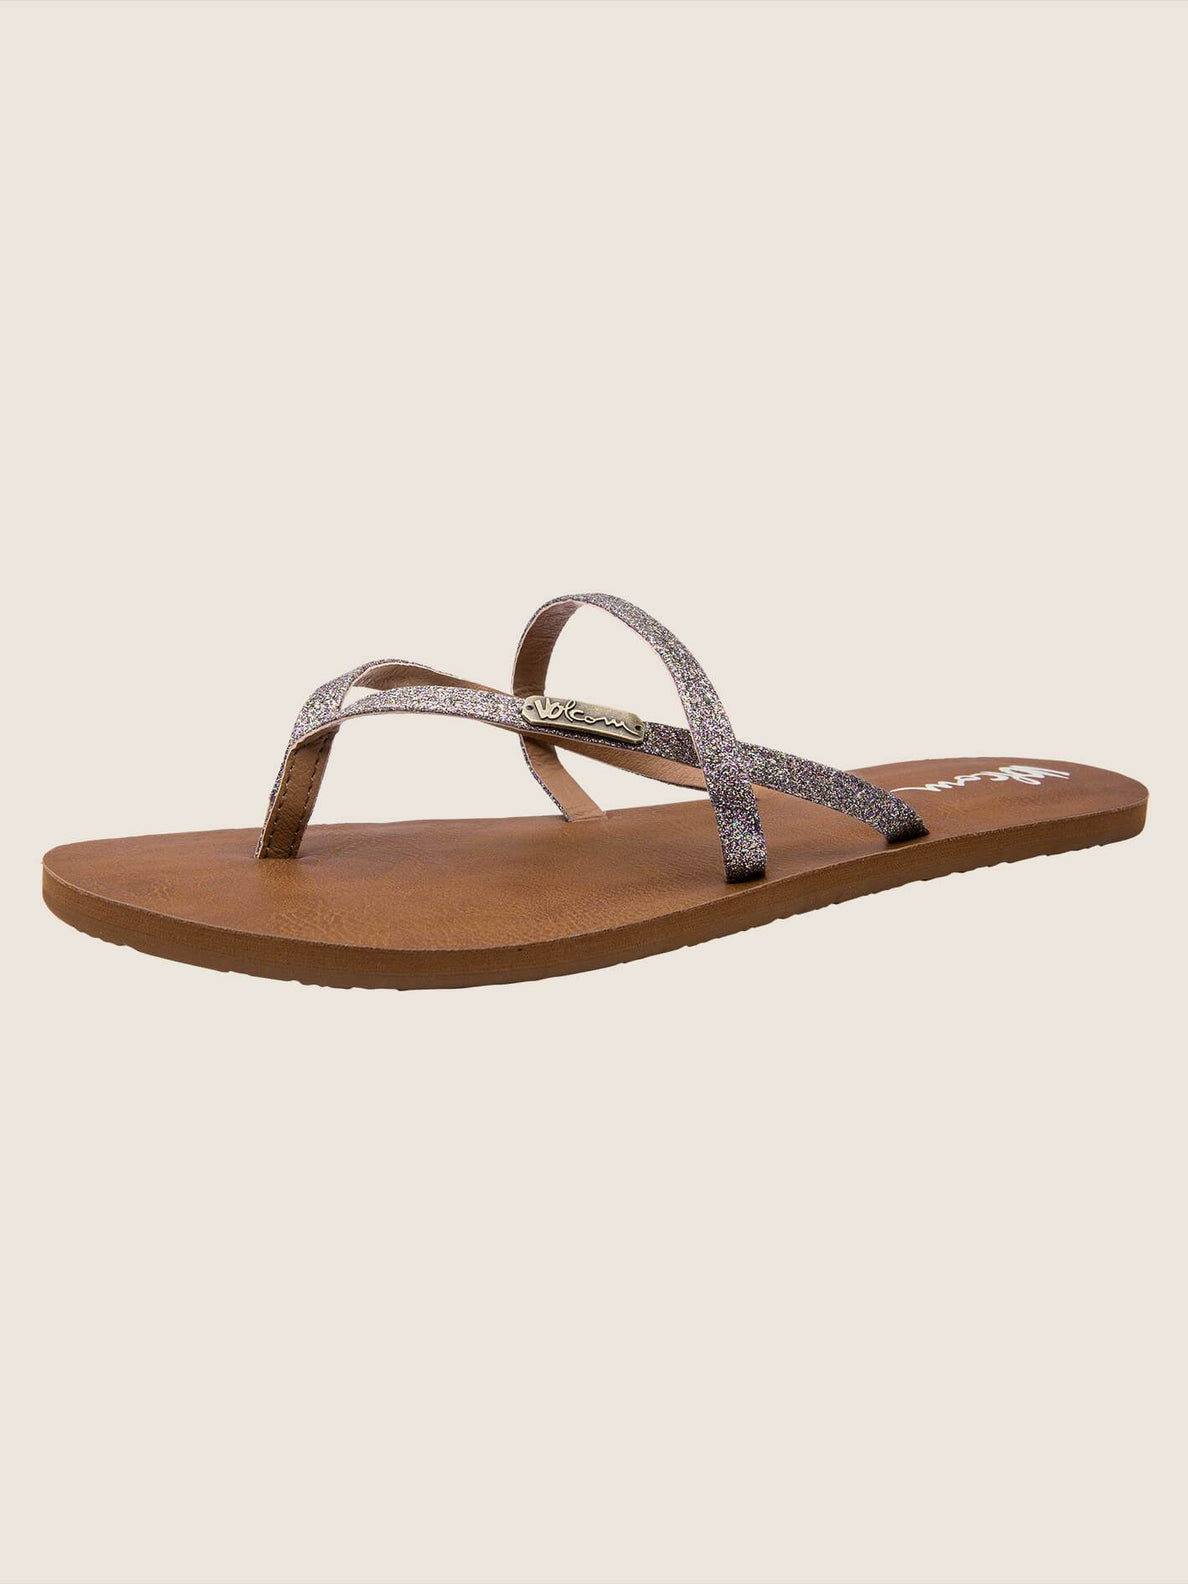 All Night Long Sandals - Multi